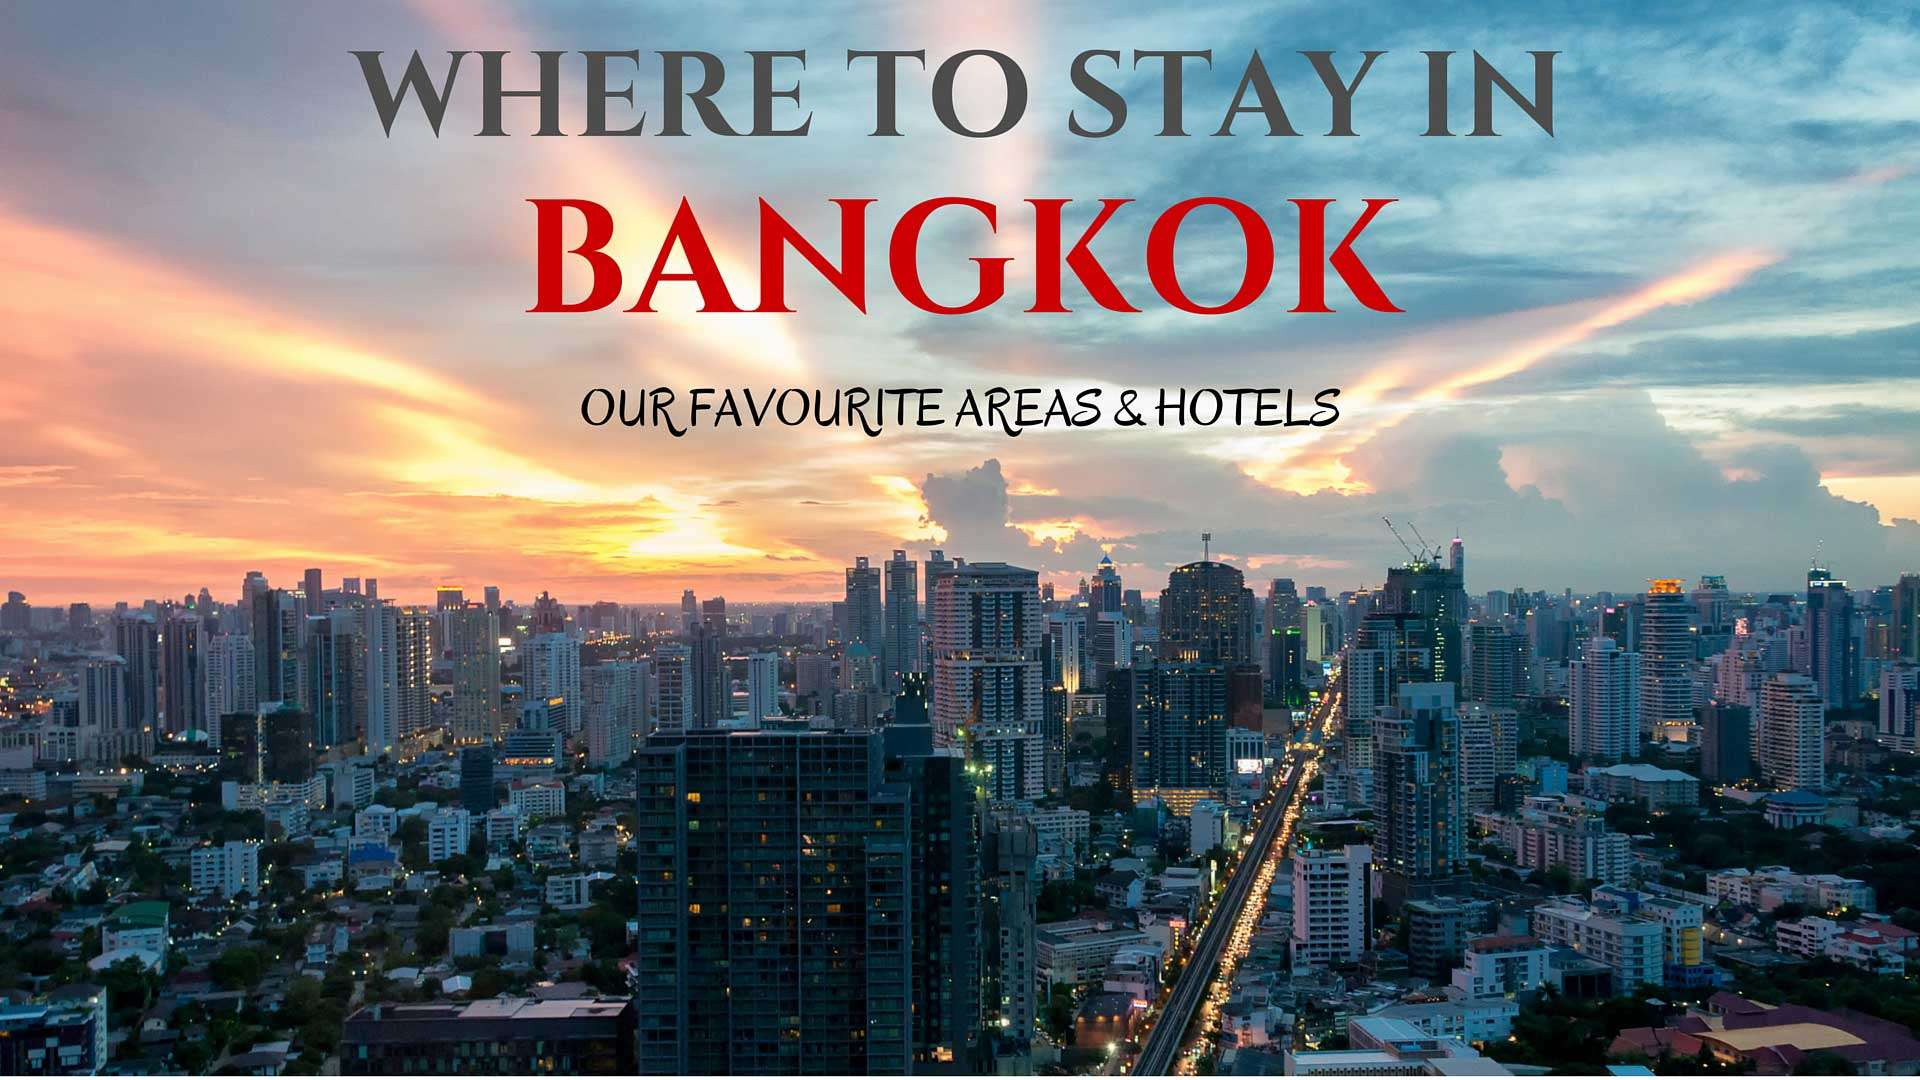 Where To Stay In Bangkok u2013 Our